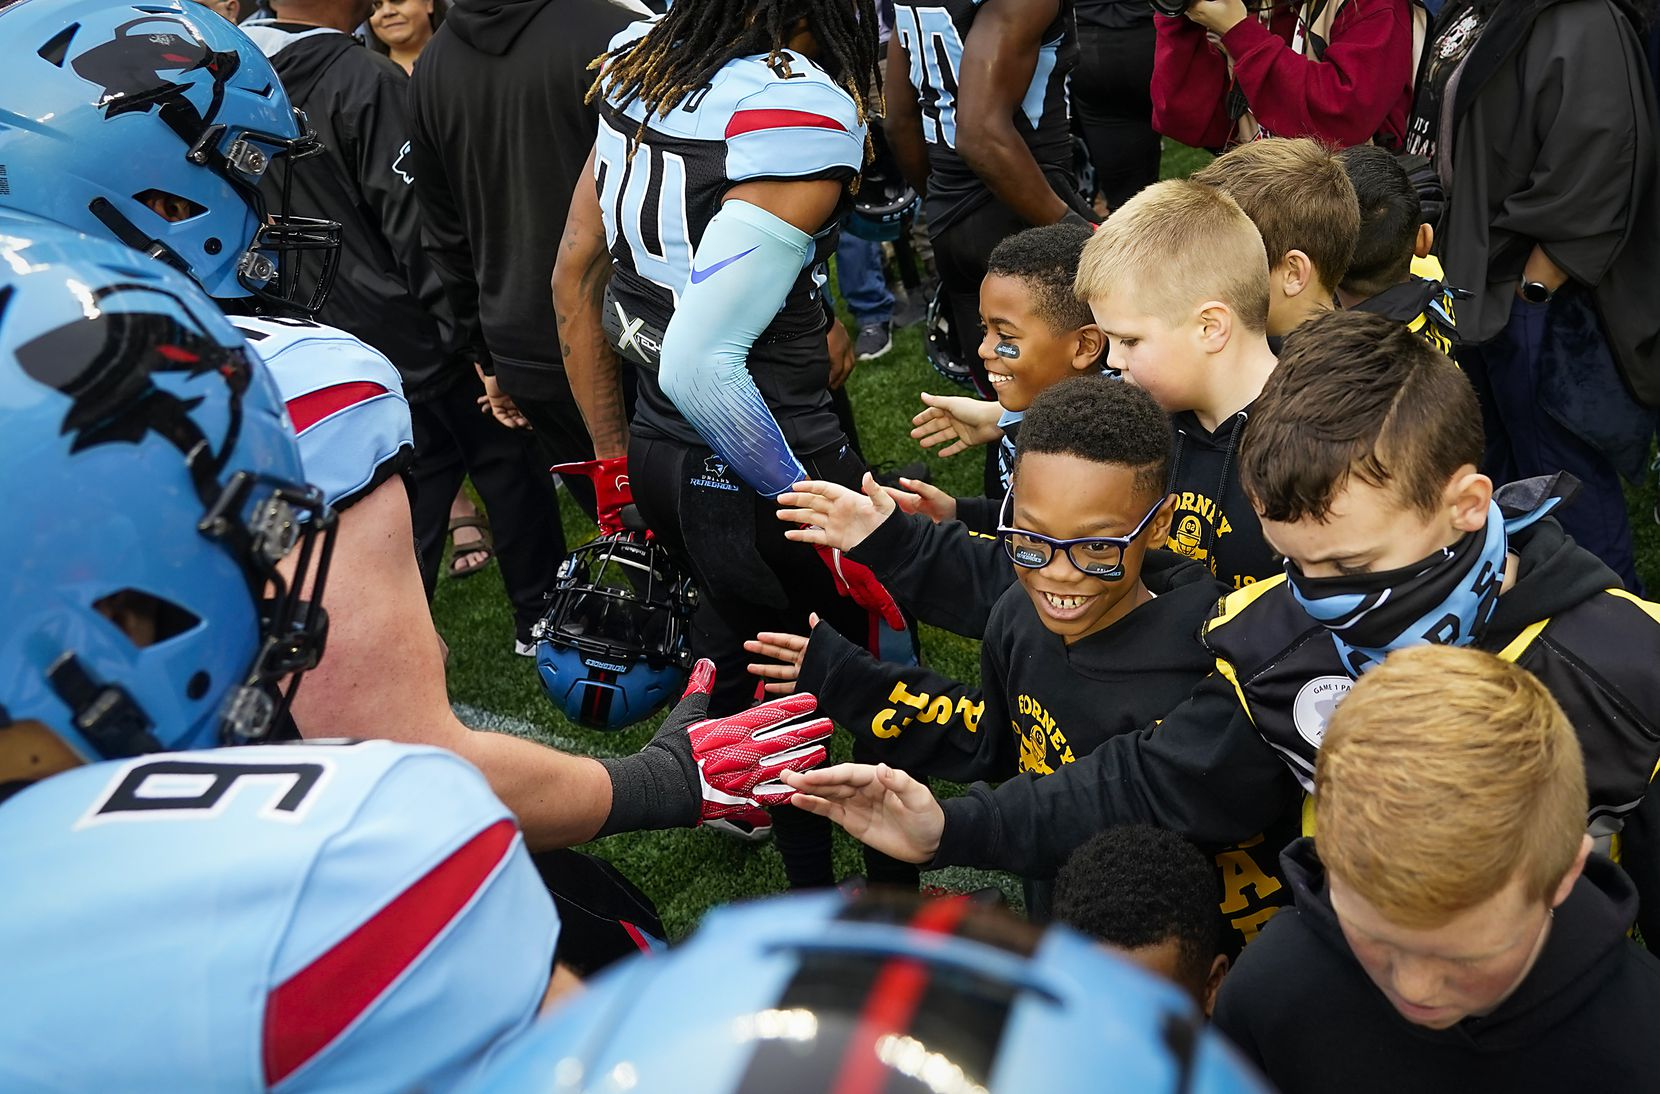 Dallas Renegades players high five members of the Forney Jackrabbits youth football team before an XFL football game against the St. Louis Battlehawks at Globe Life Park on Sunday, Feb. 9, 2020, in Arlington.